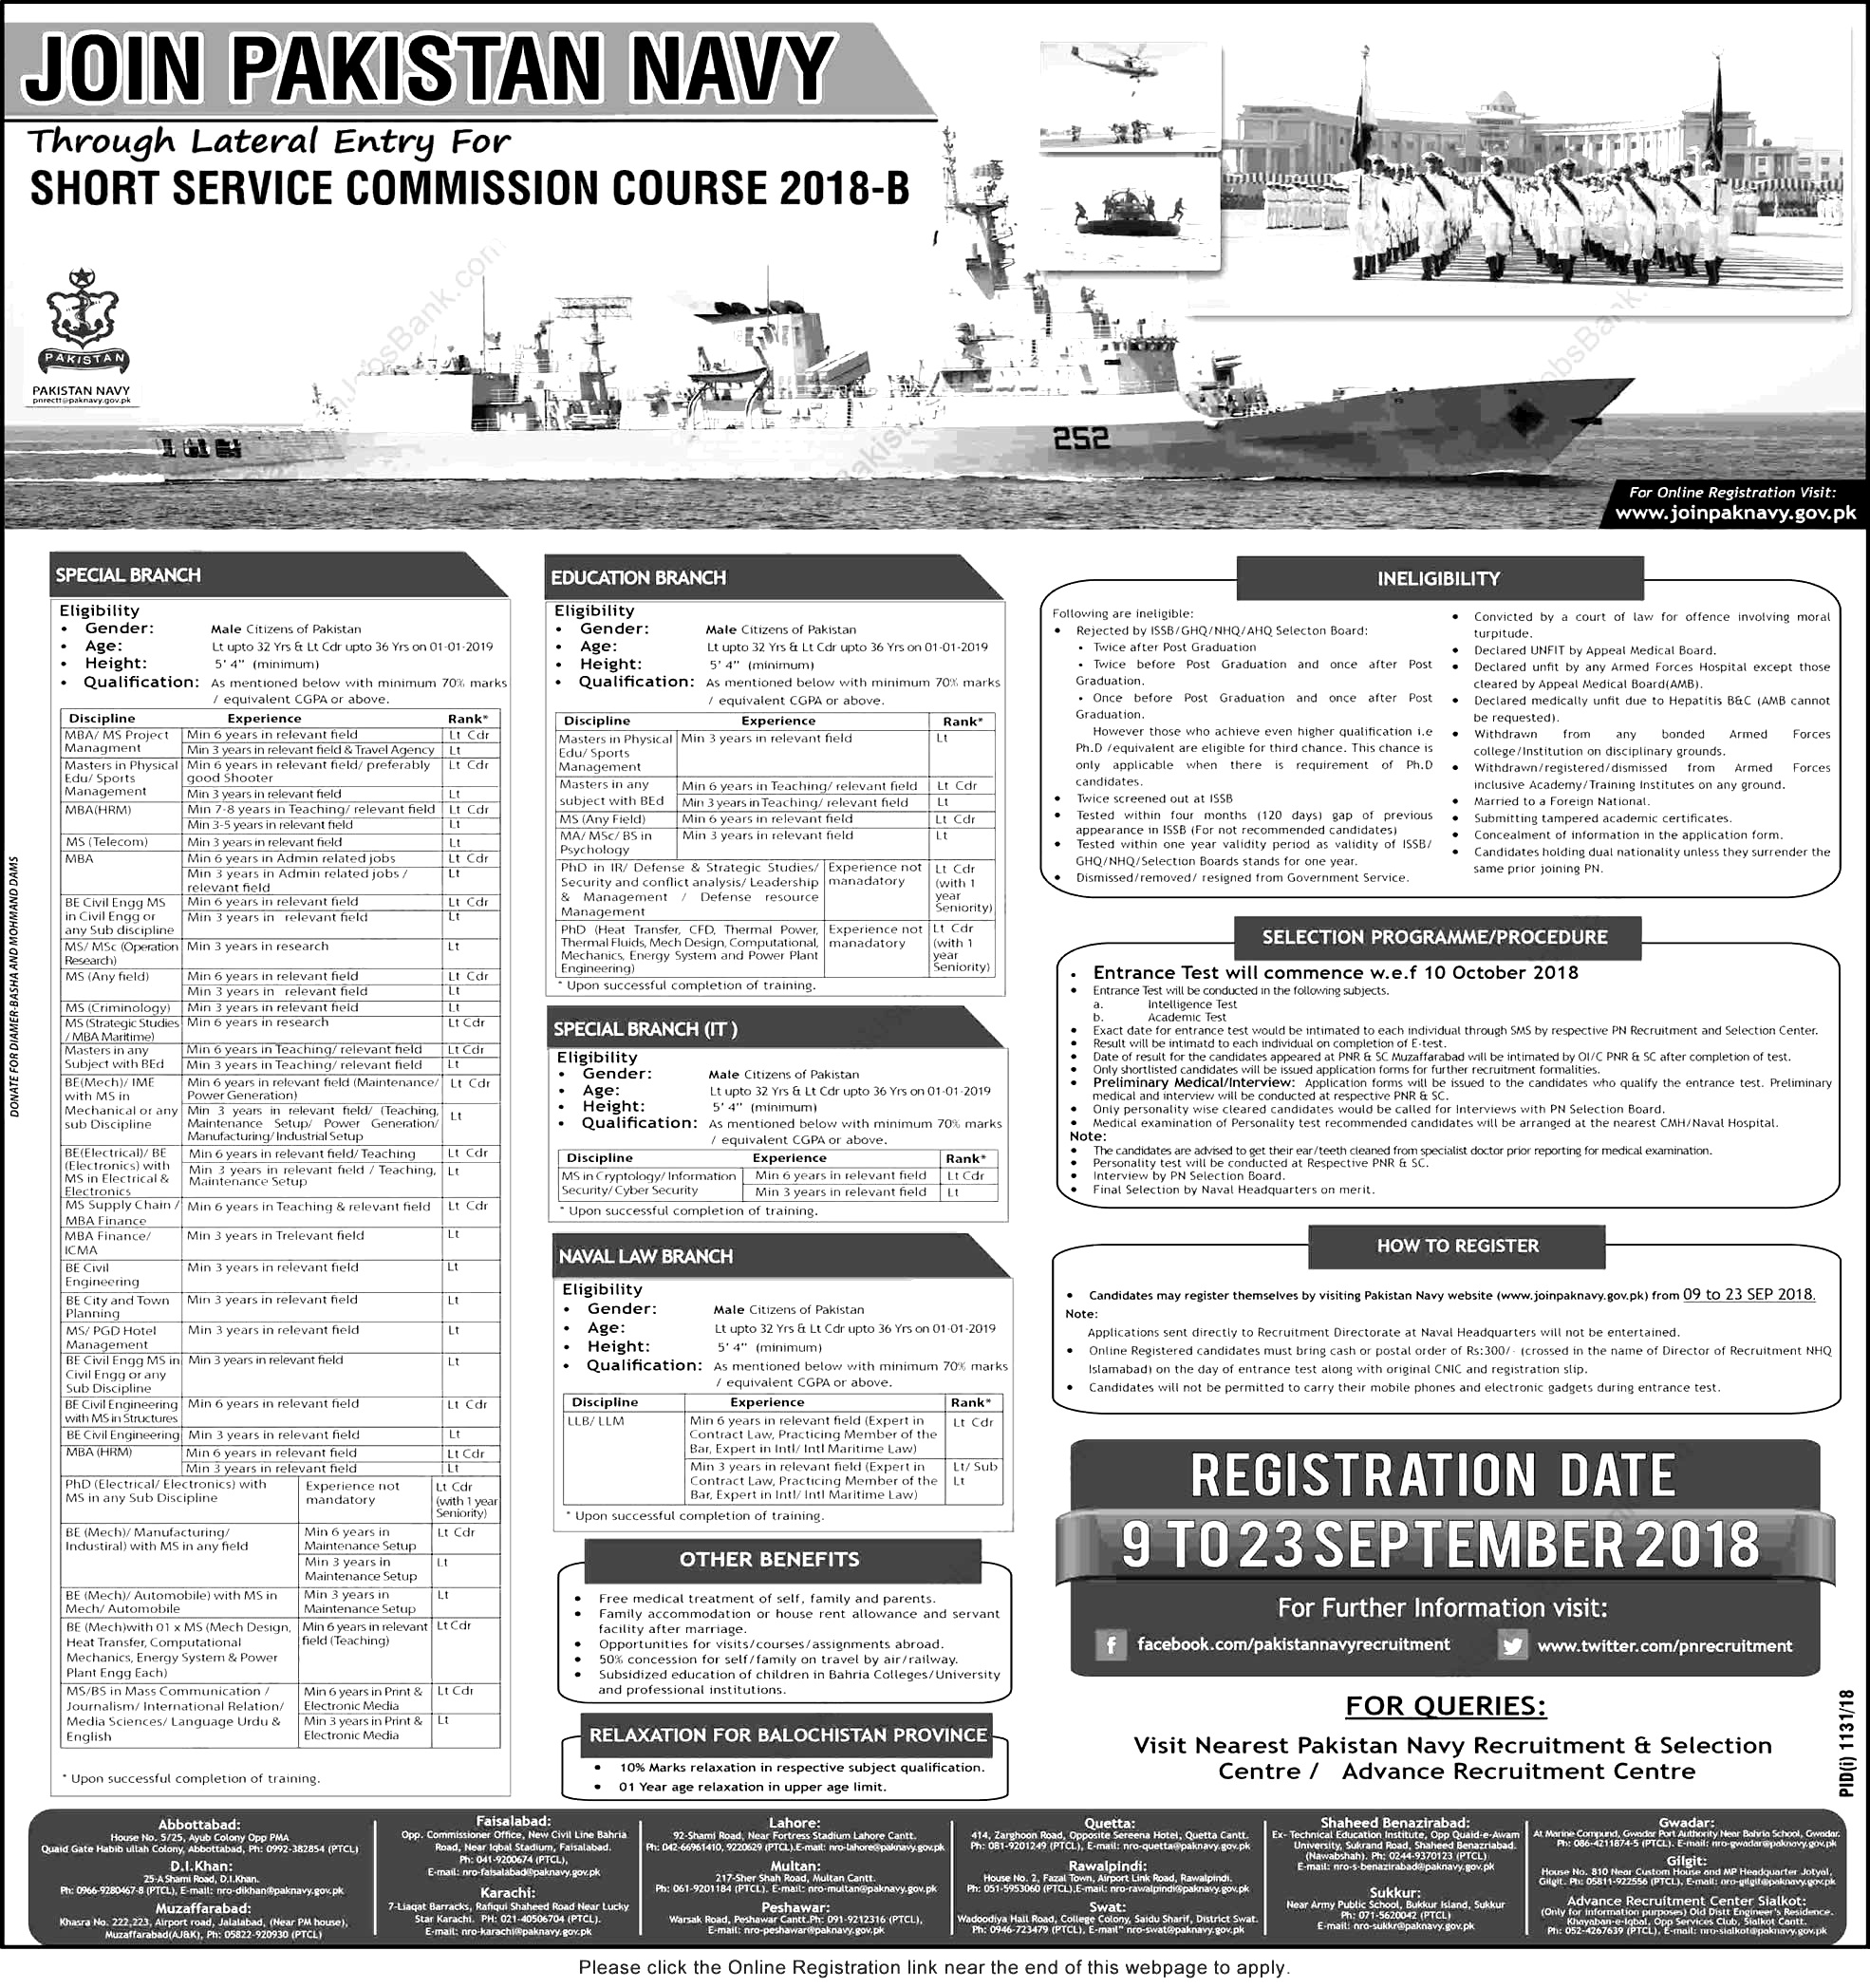 Join Pakistan Navy as commission officer September 2018 online registration